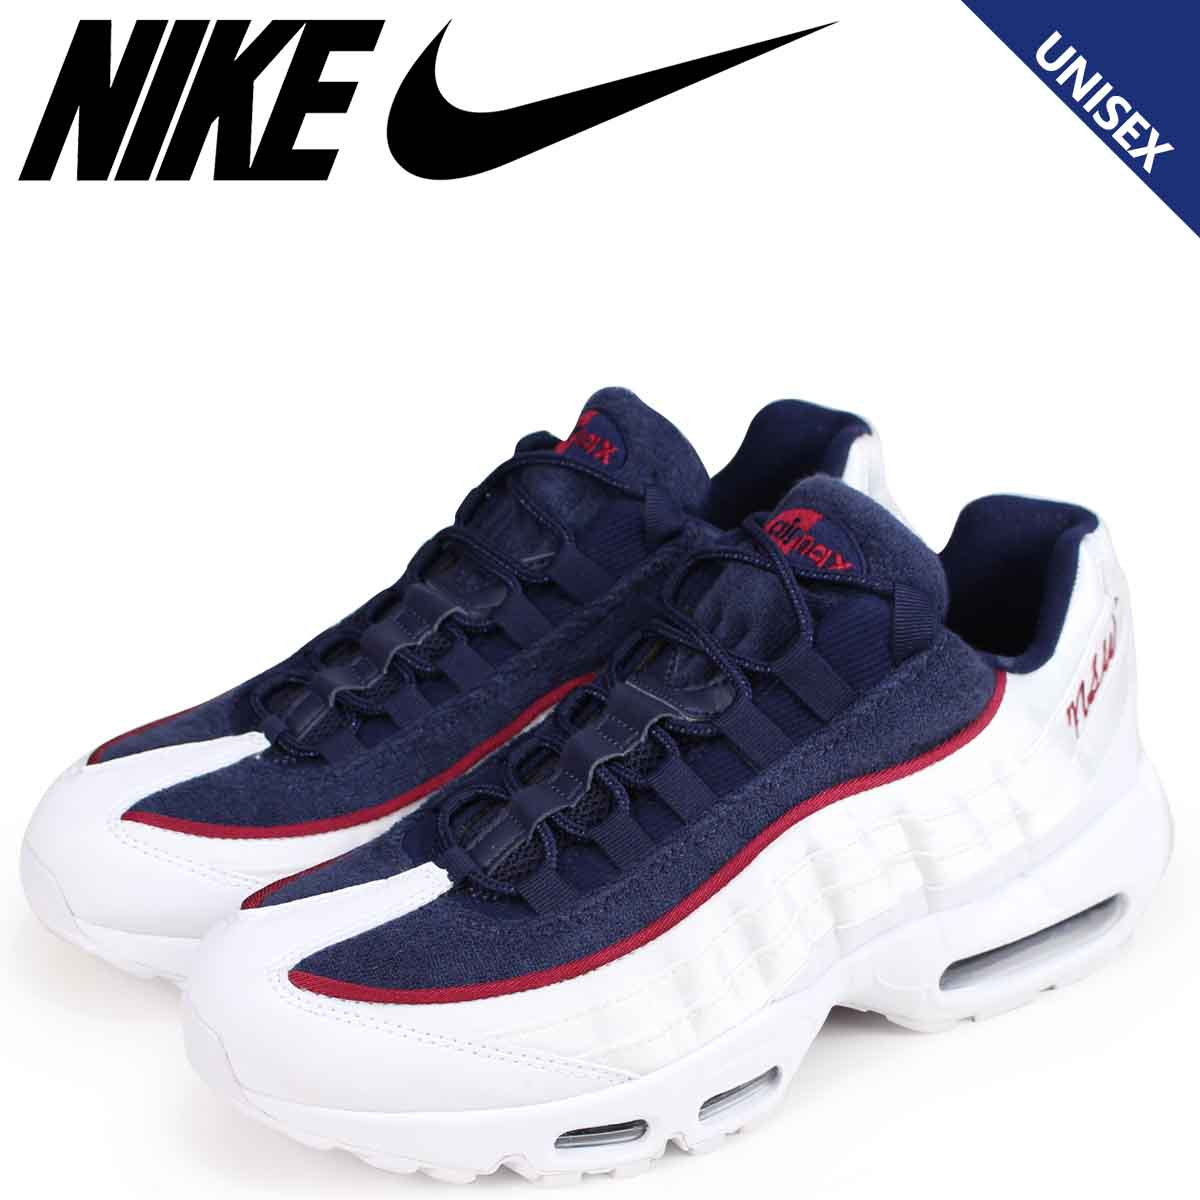 best website 8b7ff 82192 NIKE Kie Ney AMAX 95 sneakers Lady's men WMNS AIR MAX 95 LX AA1103-100  white white